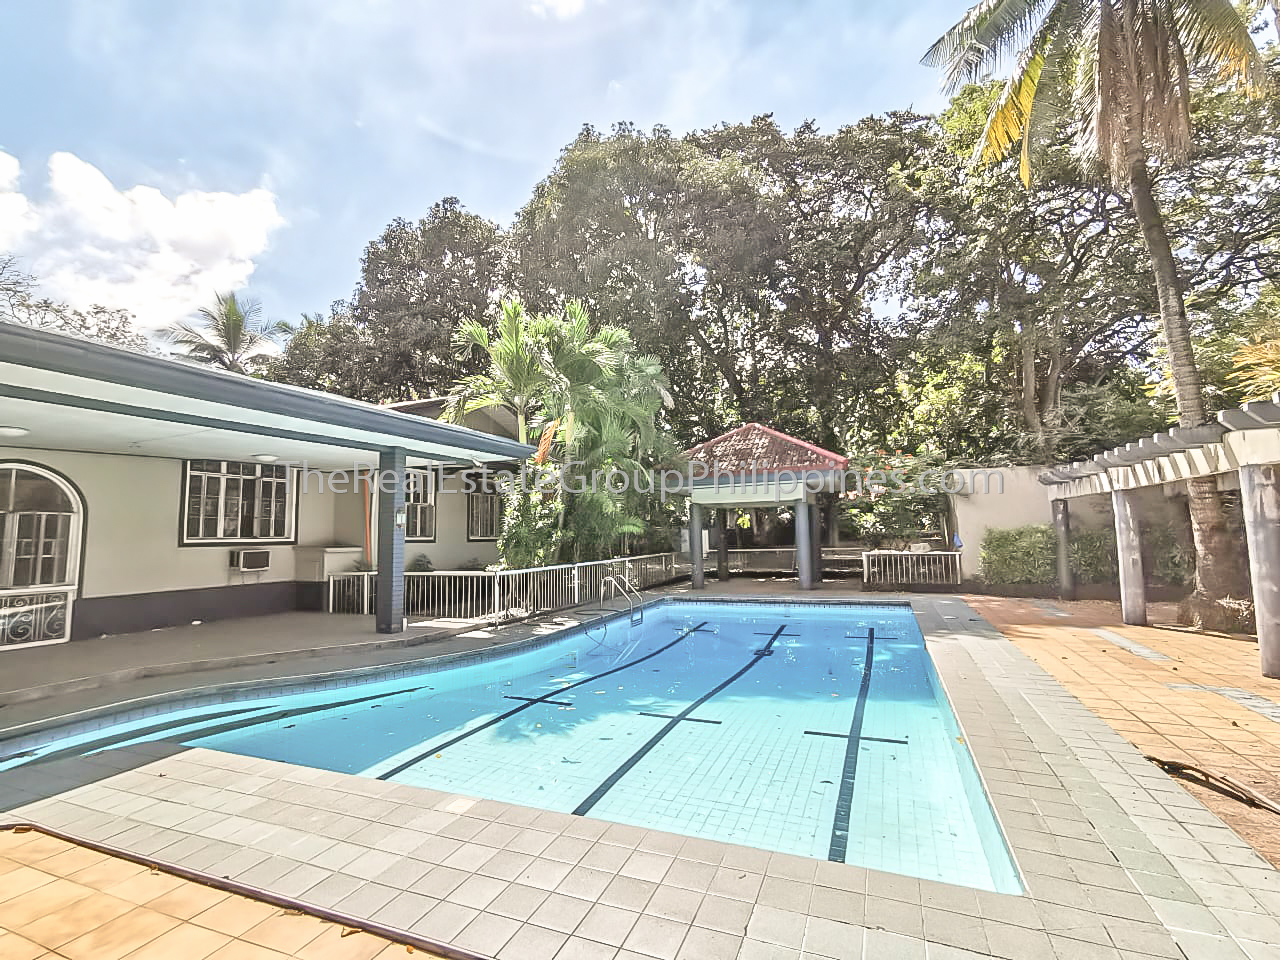 5BR House For Sale, Forbes Park Village, Makati-9